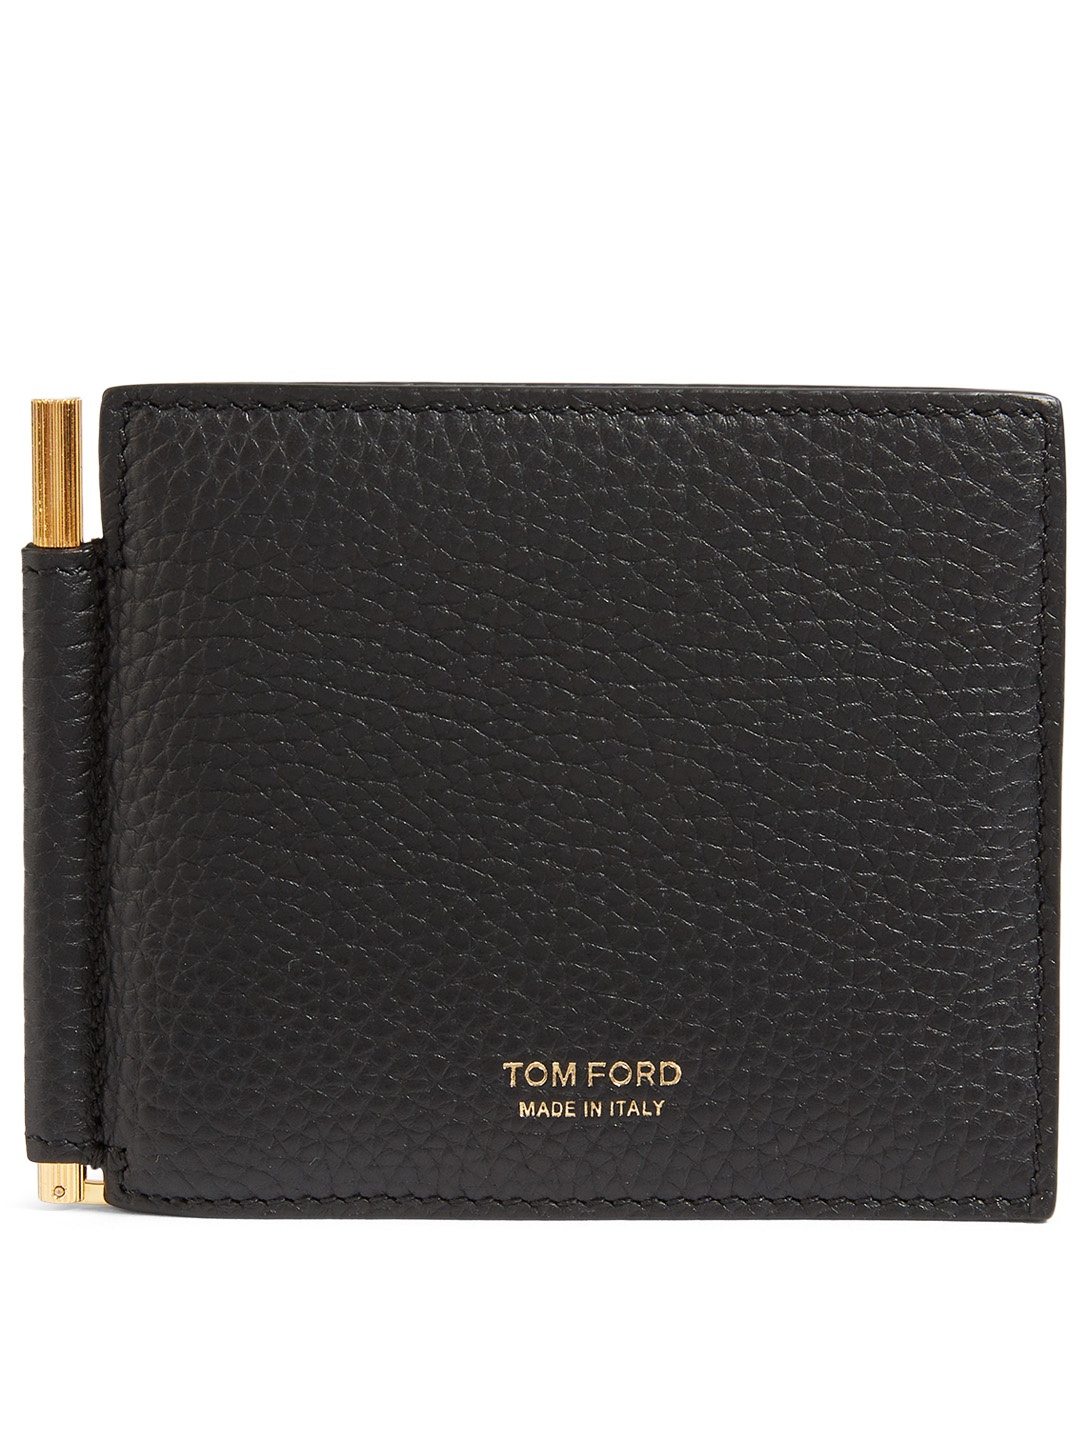 TOM FORD T Line Leather Wallet With Money Clip Men's Black